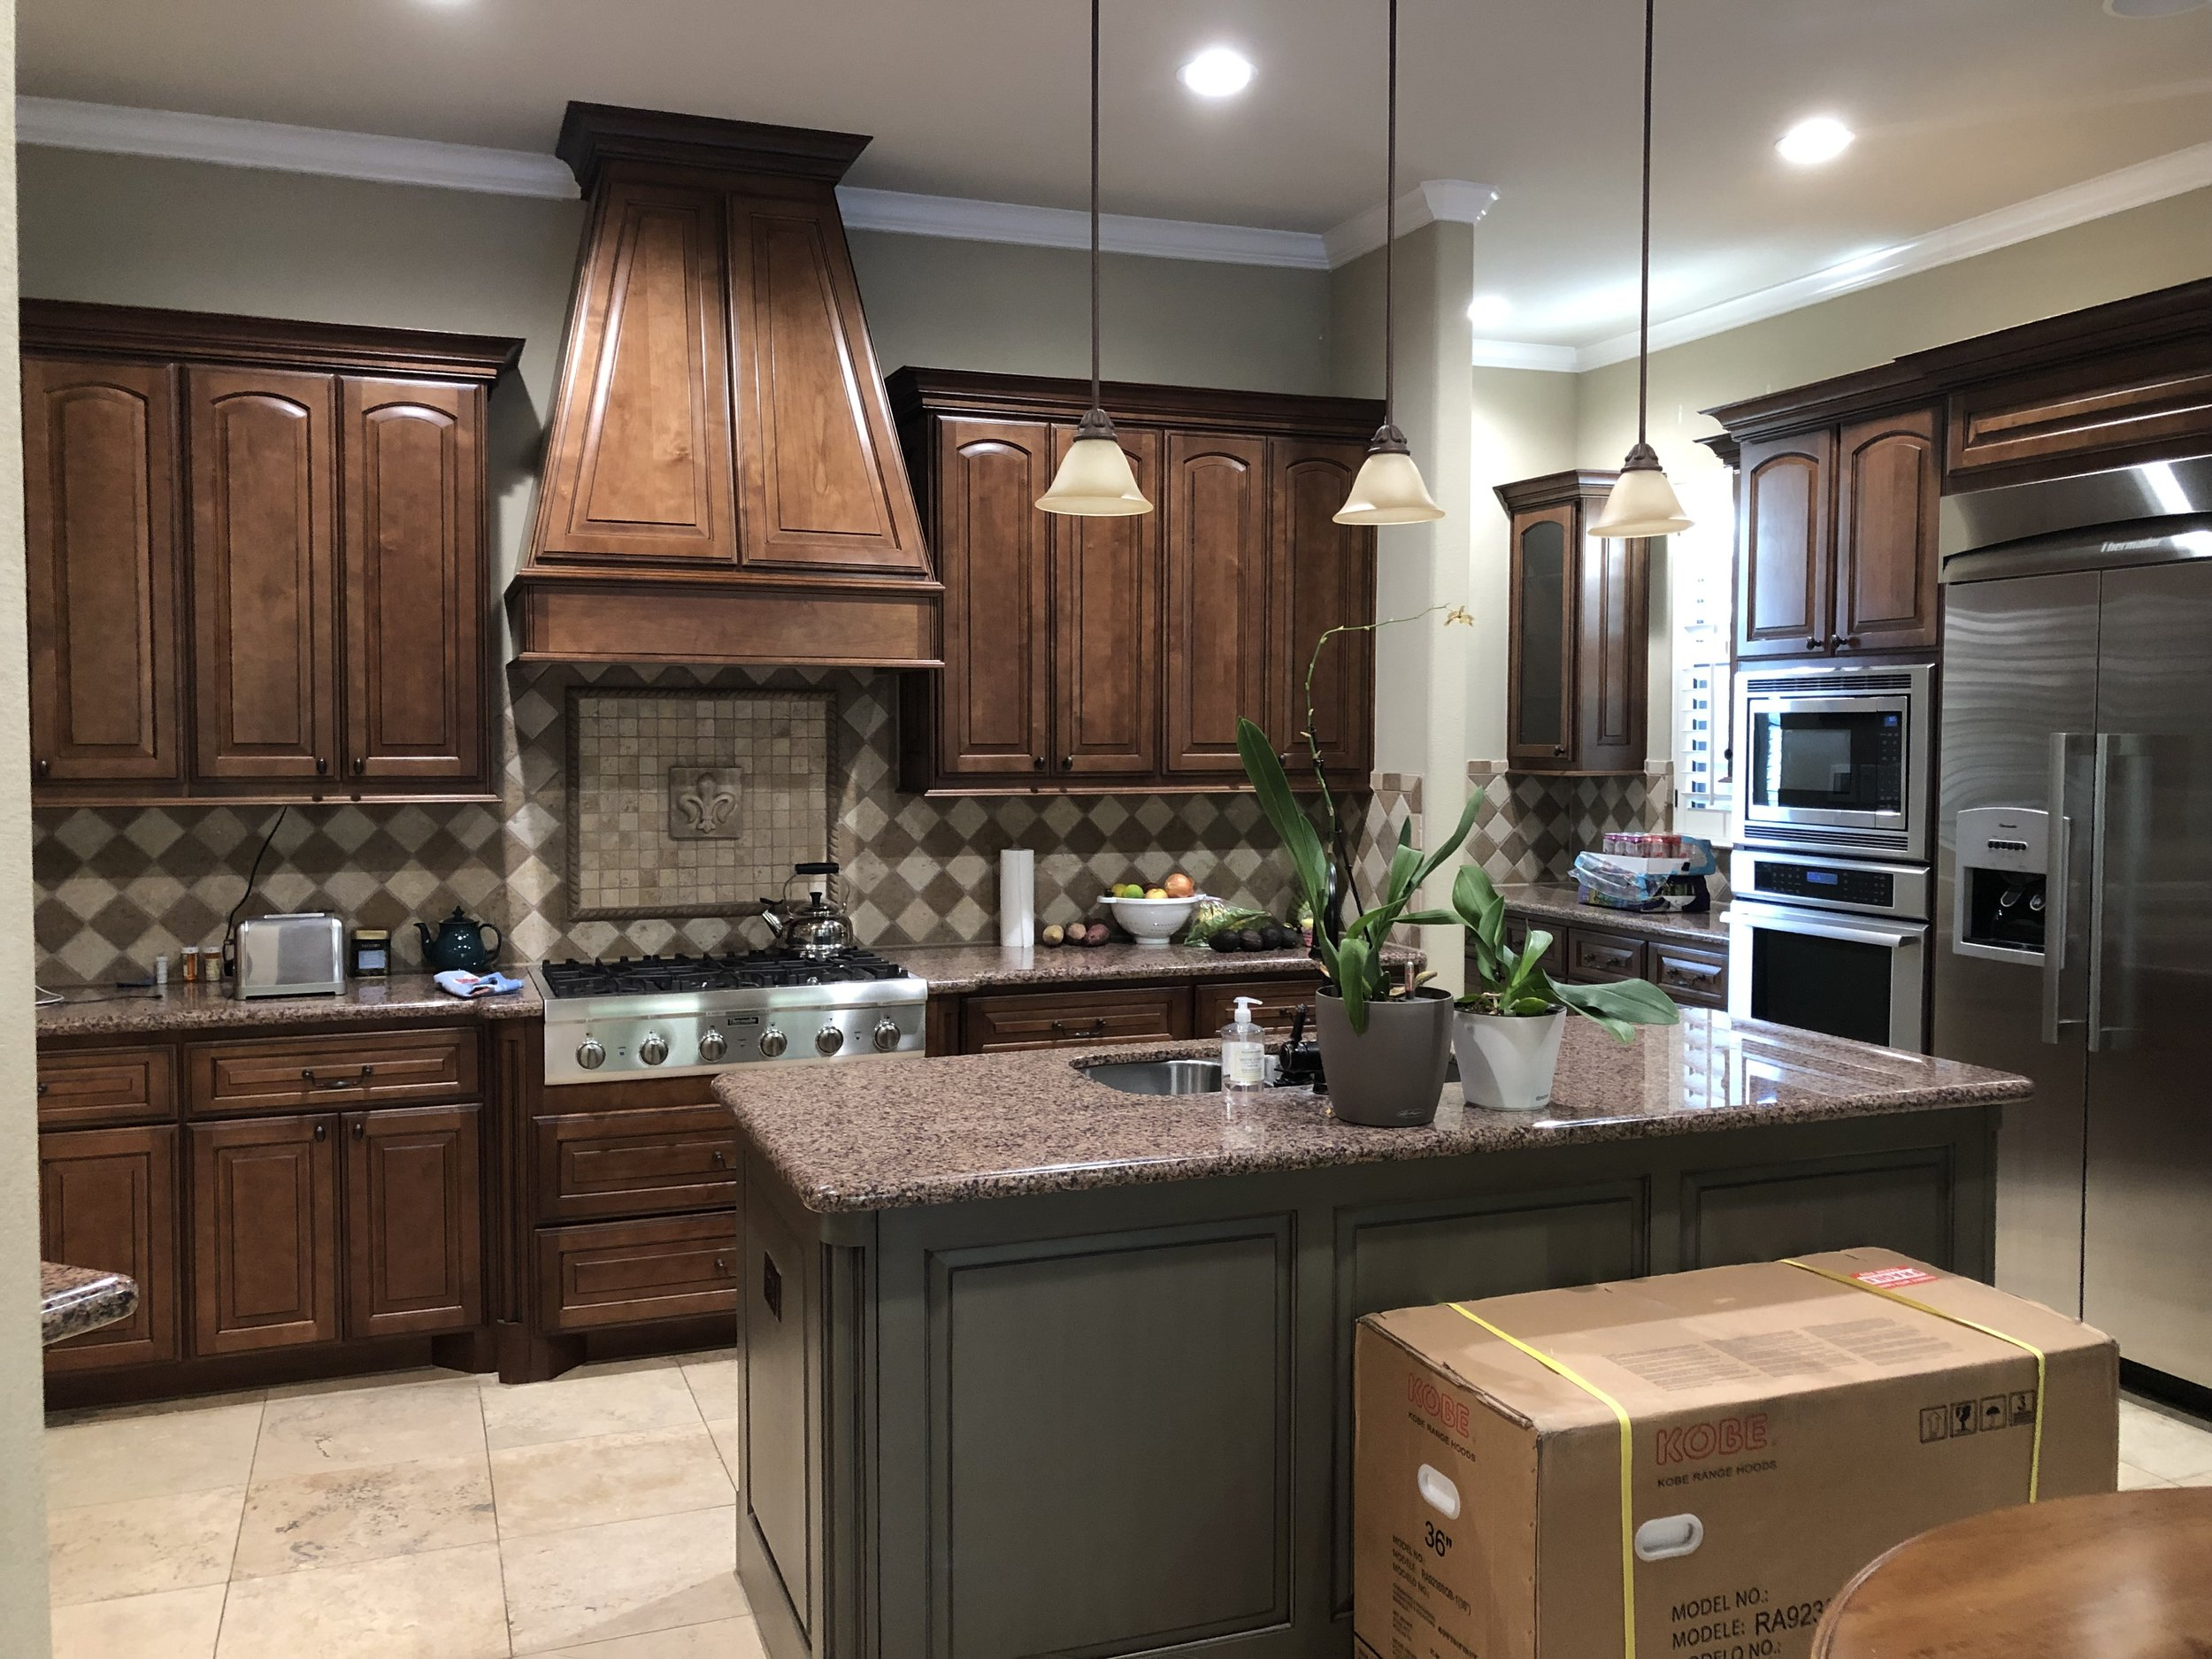 BEFORE KITCHEN REMODEL - Project starting construction